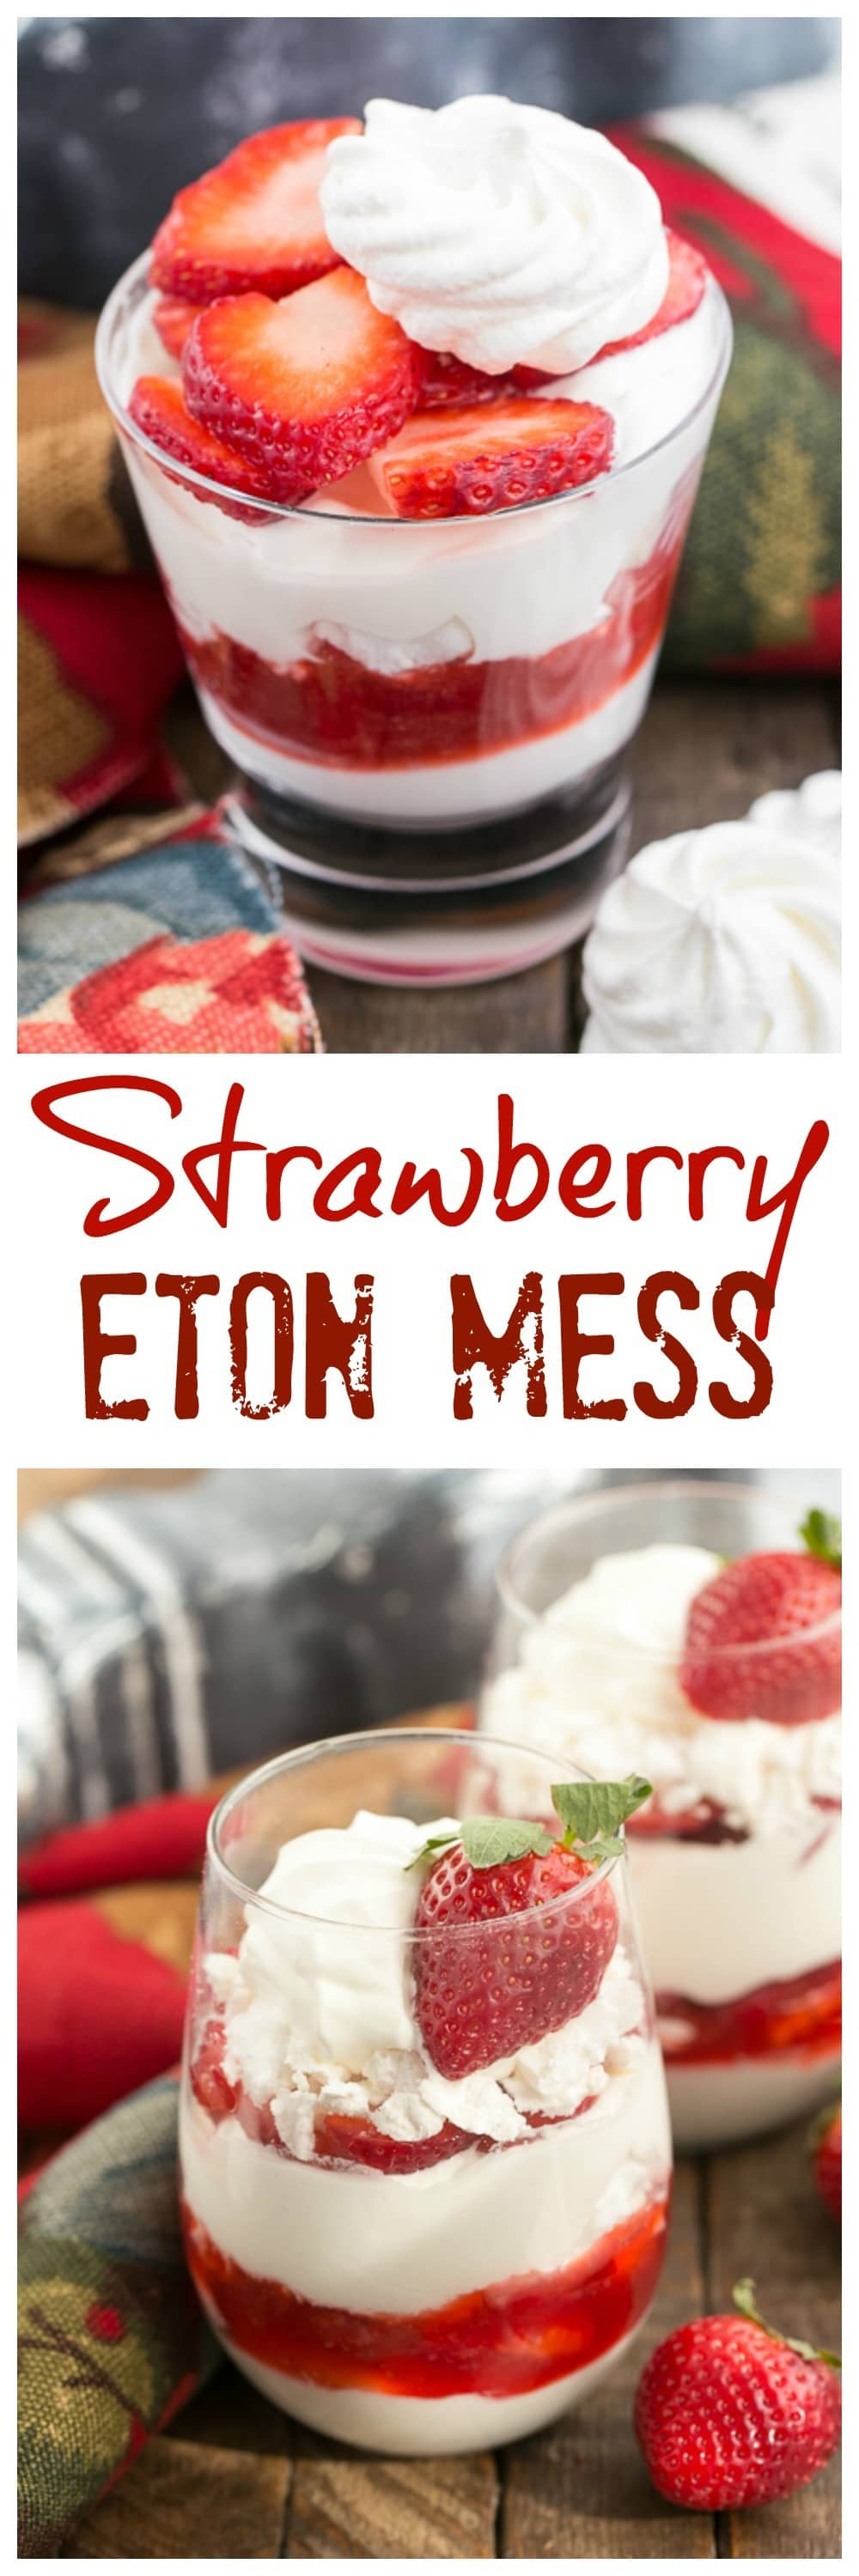 Strawberry Eton Mess is a sweet parfait featuring layers offreshly whipped cream, crushed meringue cookies, fresh strawberries, and homemade strawberry sauce. This easy strawberry parfait recipe makes the perfect dessert. #dessert #recipe #strawberries #parfait